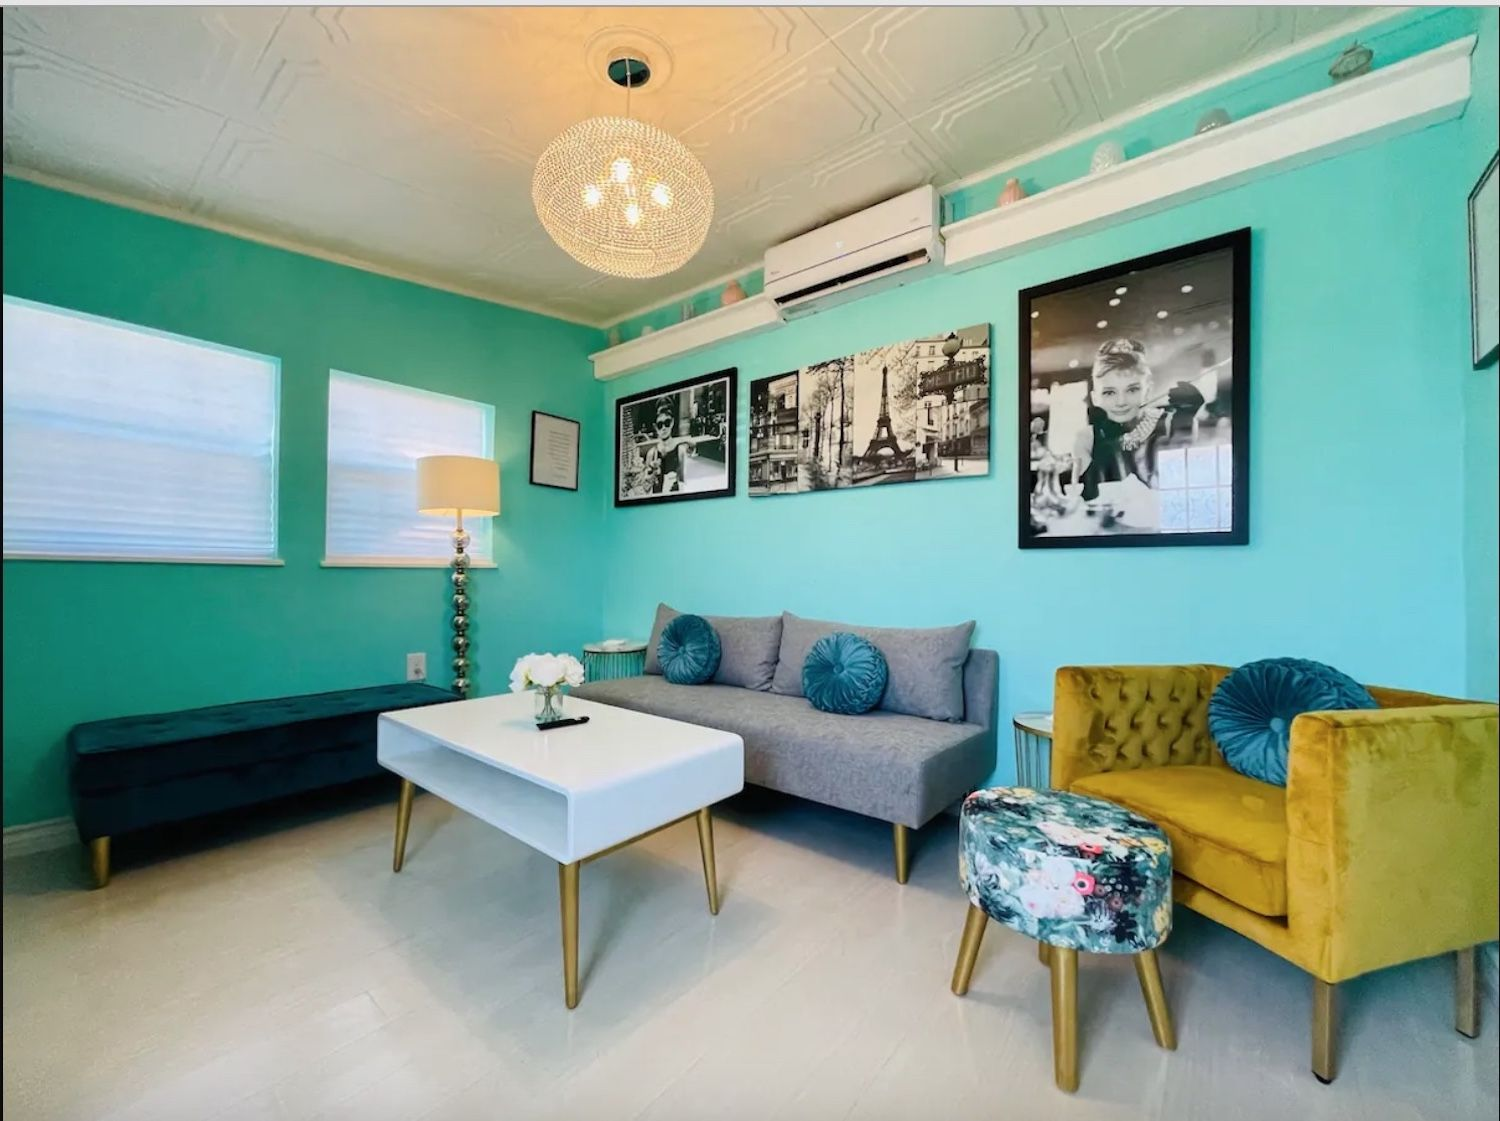 Living room in Airbnb available near the Albuquerque International Balloon Festival